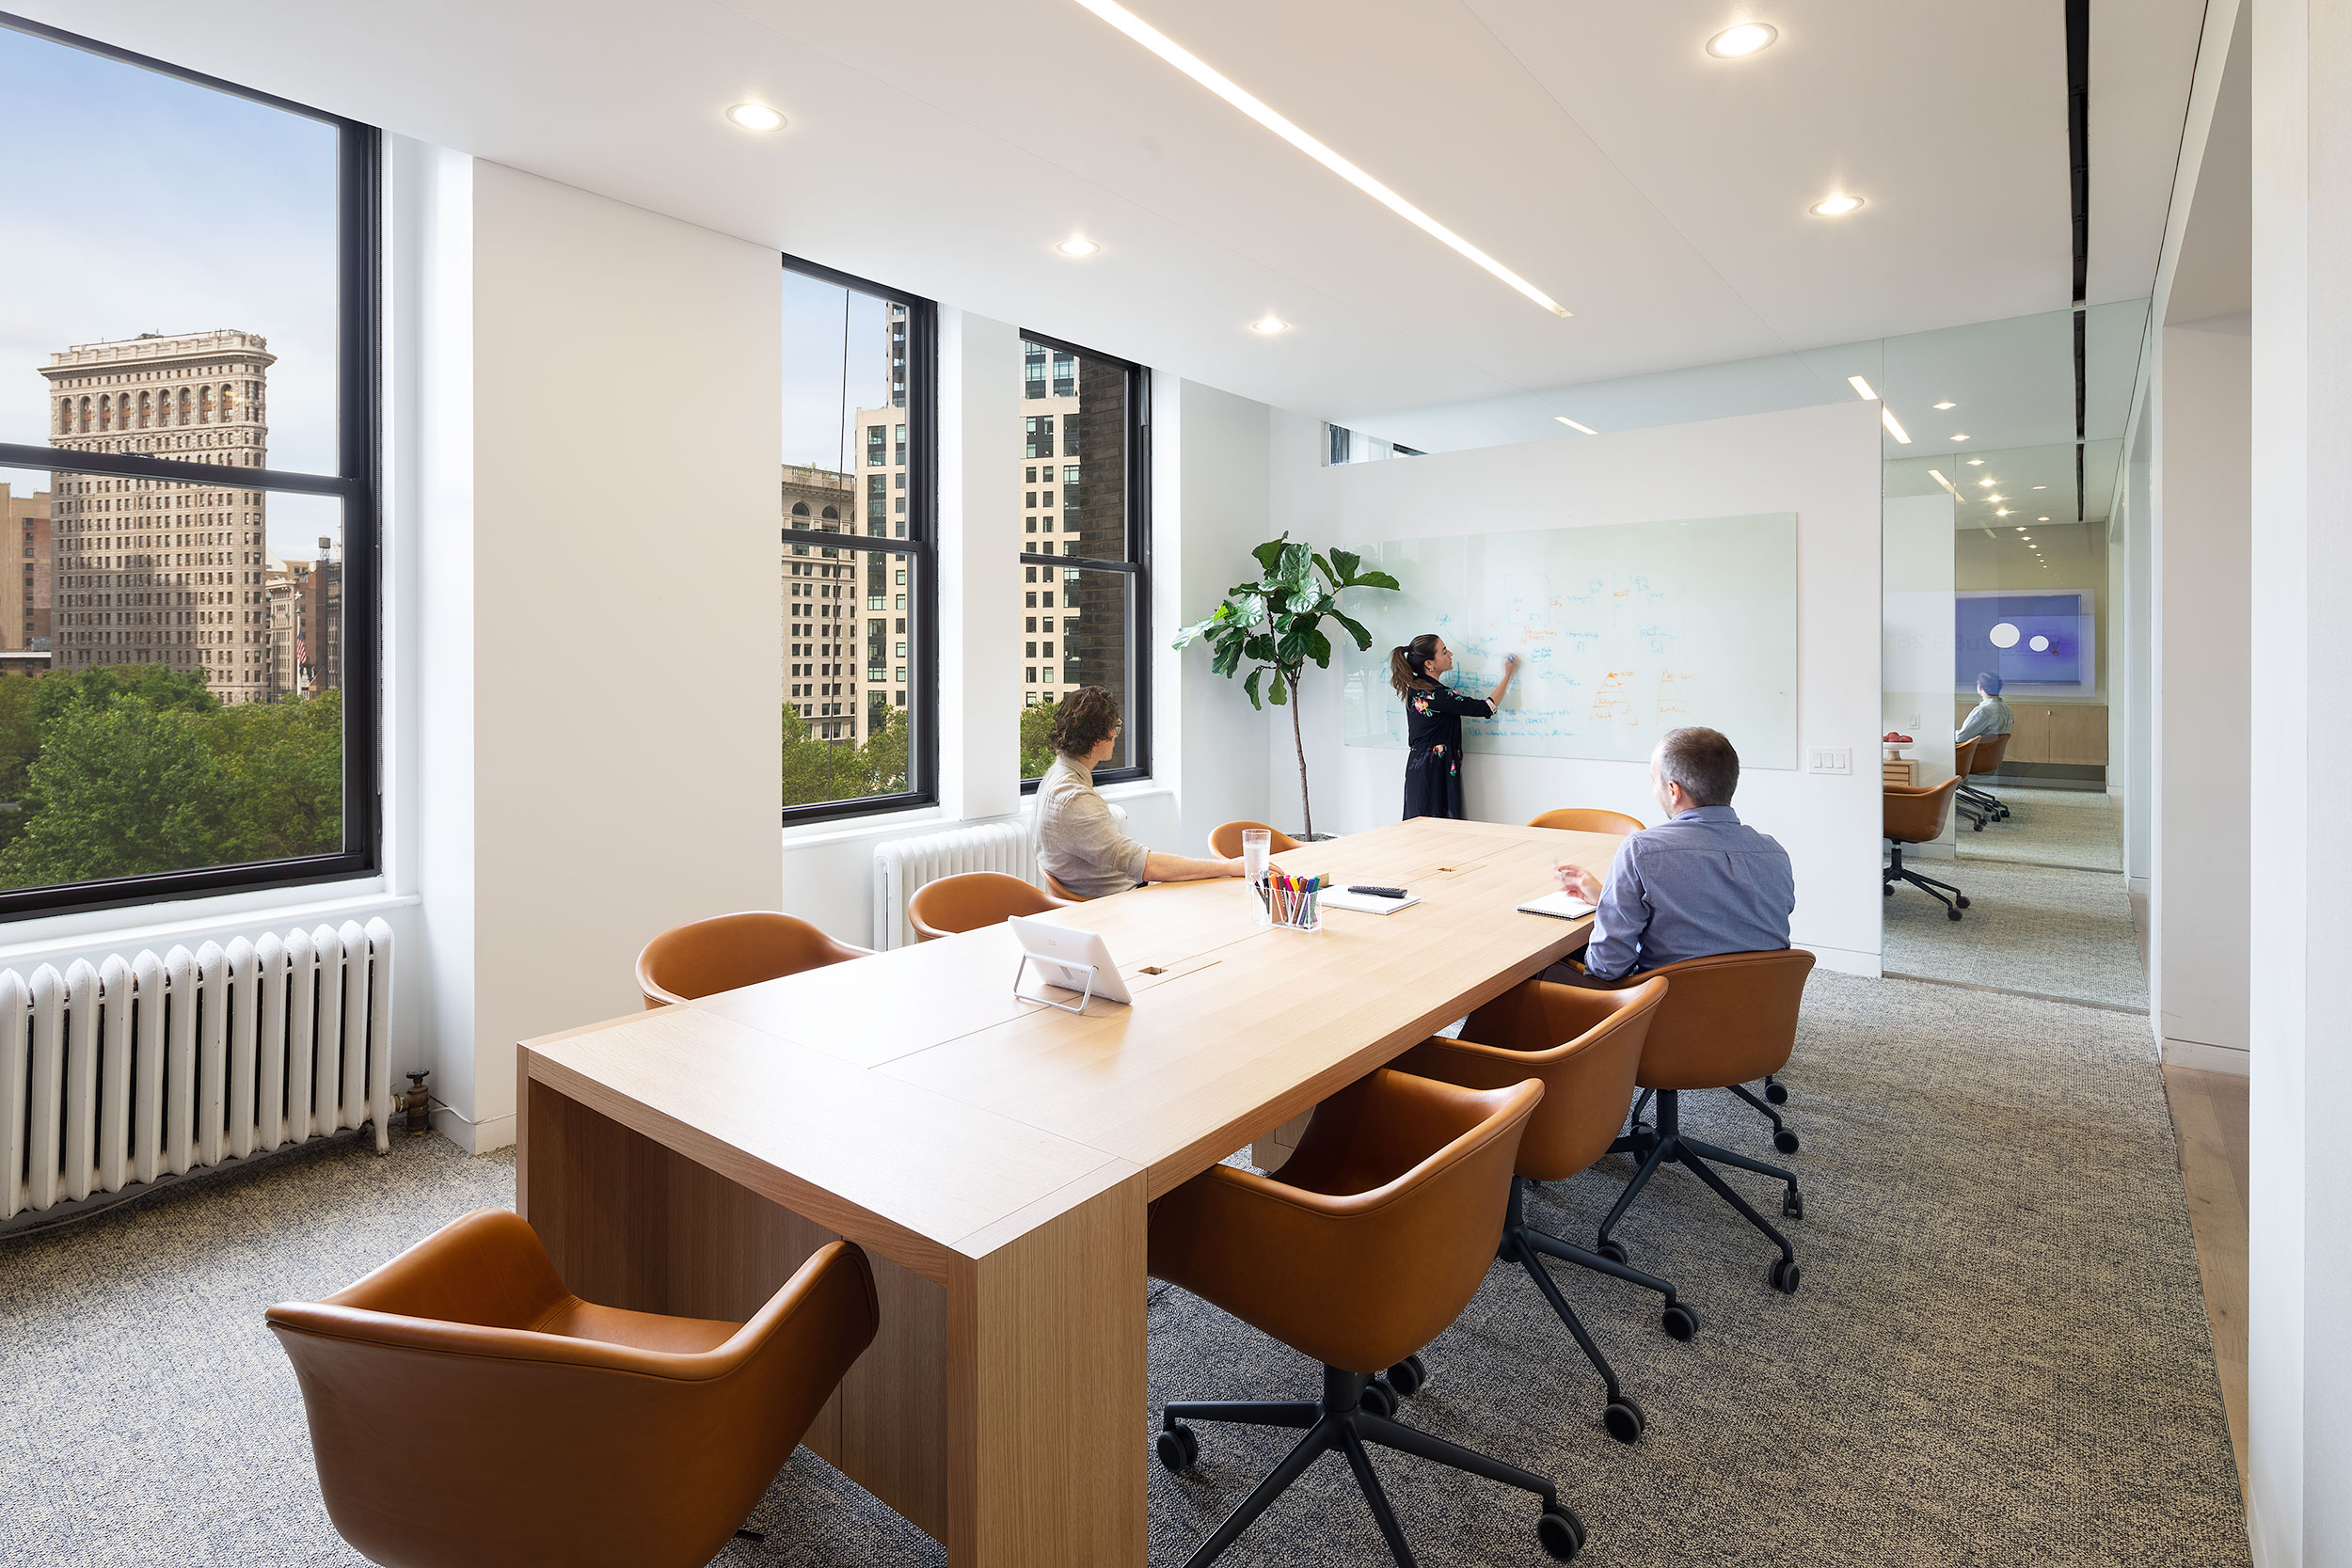 Park View, Conference Room Architecture